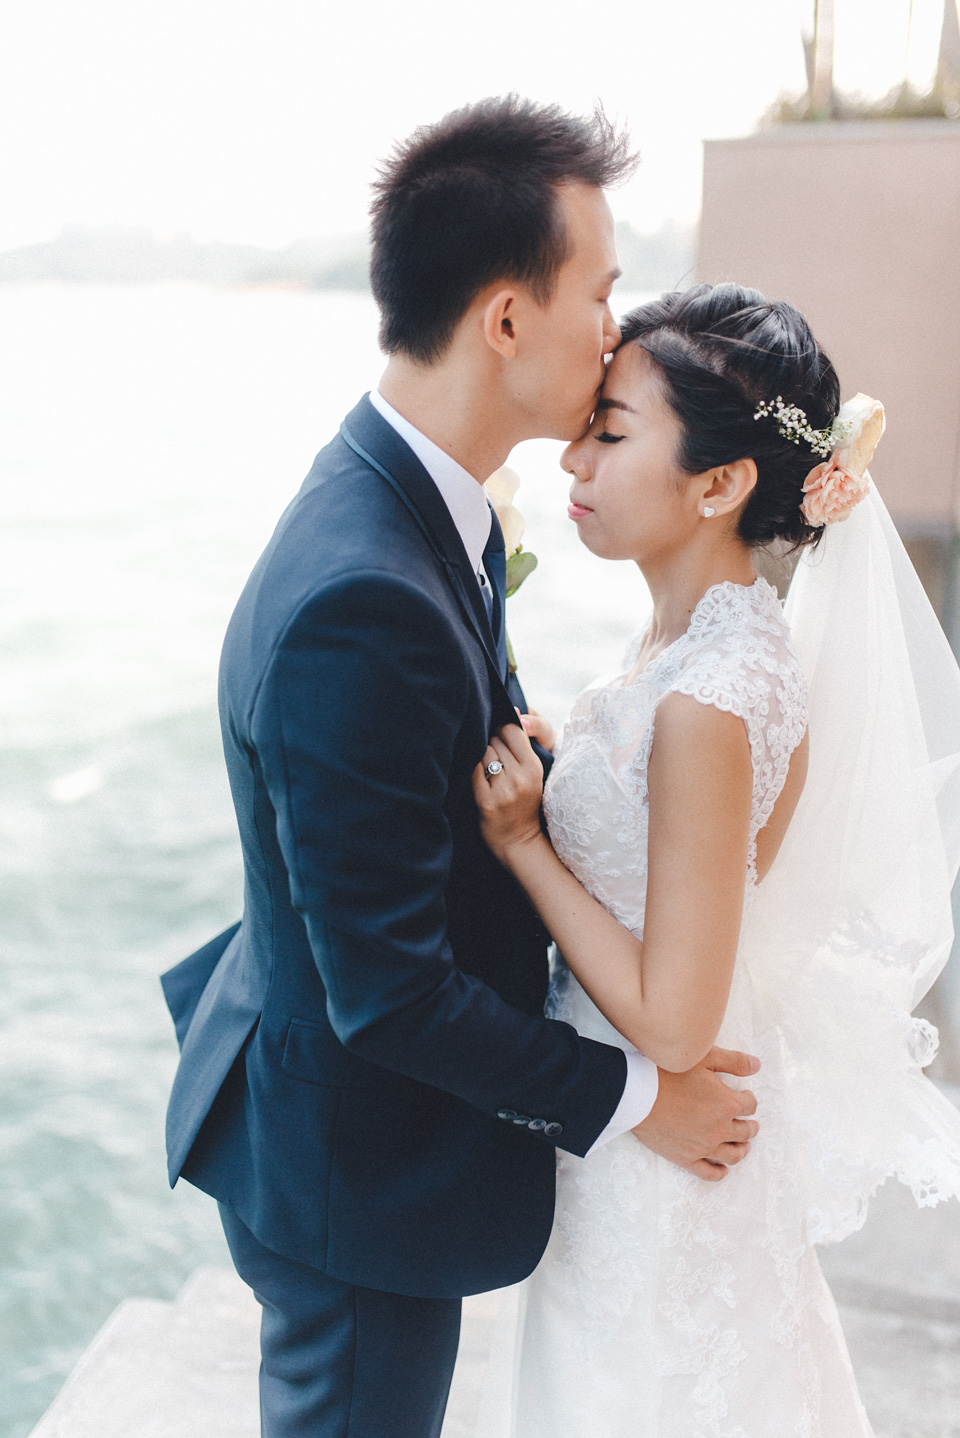 hongkong-wedding-photo-video-107